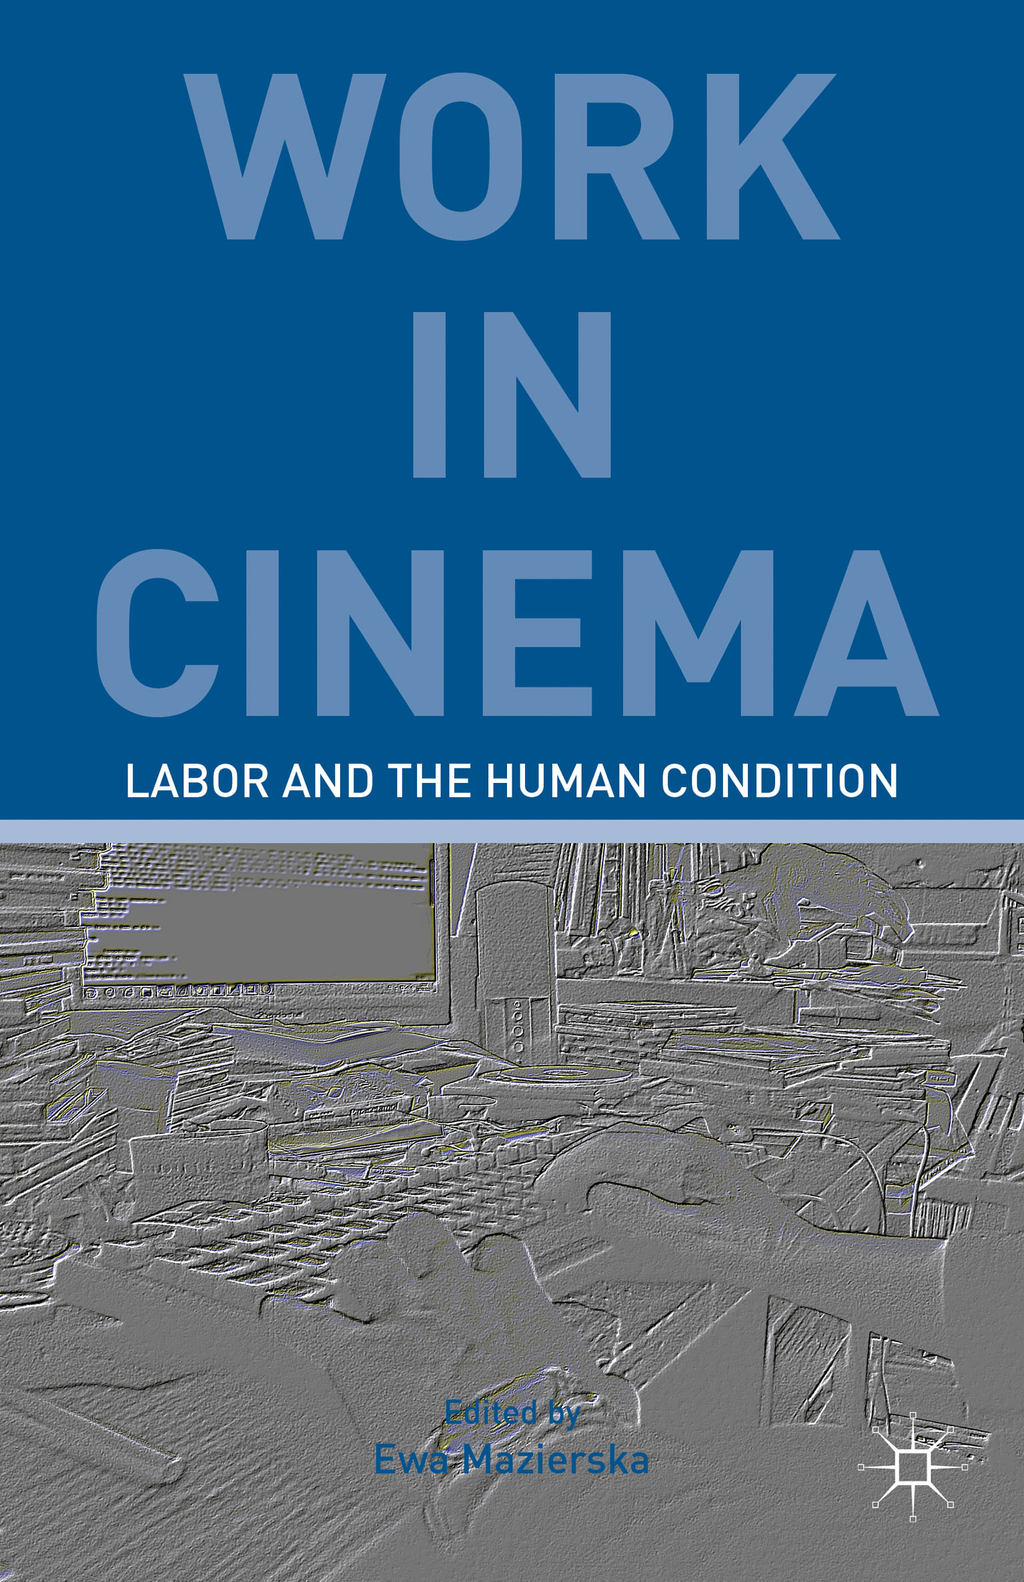 Work in Cinema Labor and the Human Condition